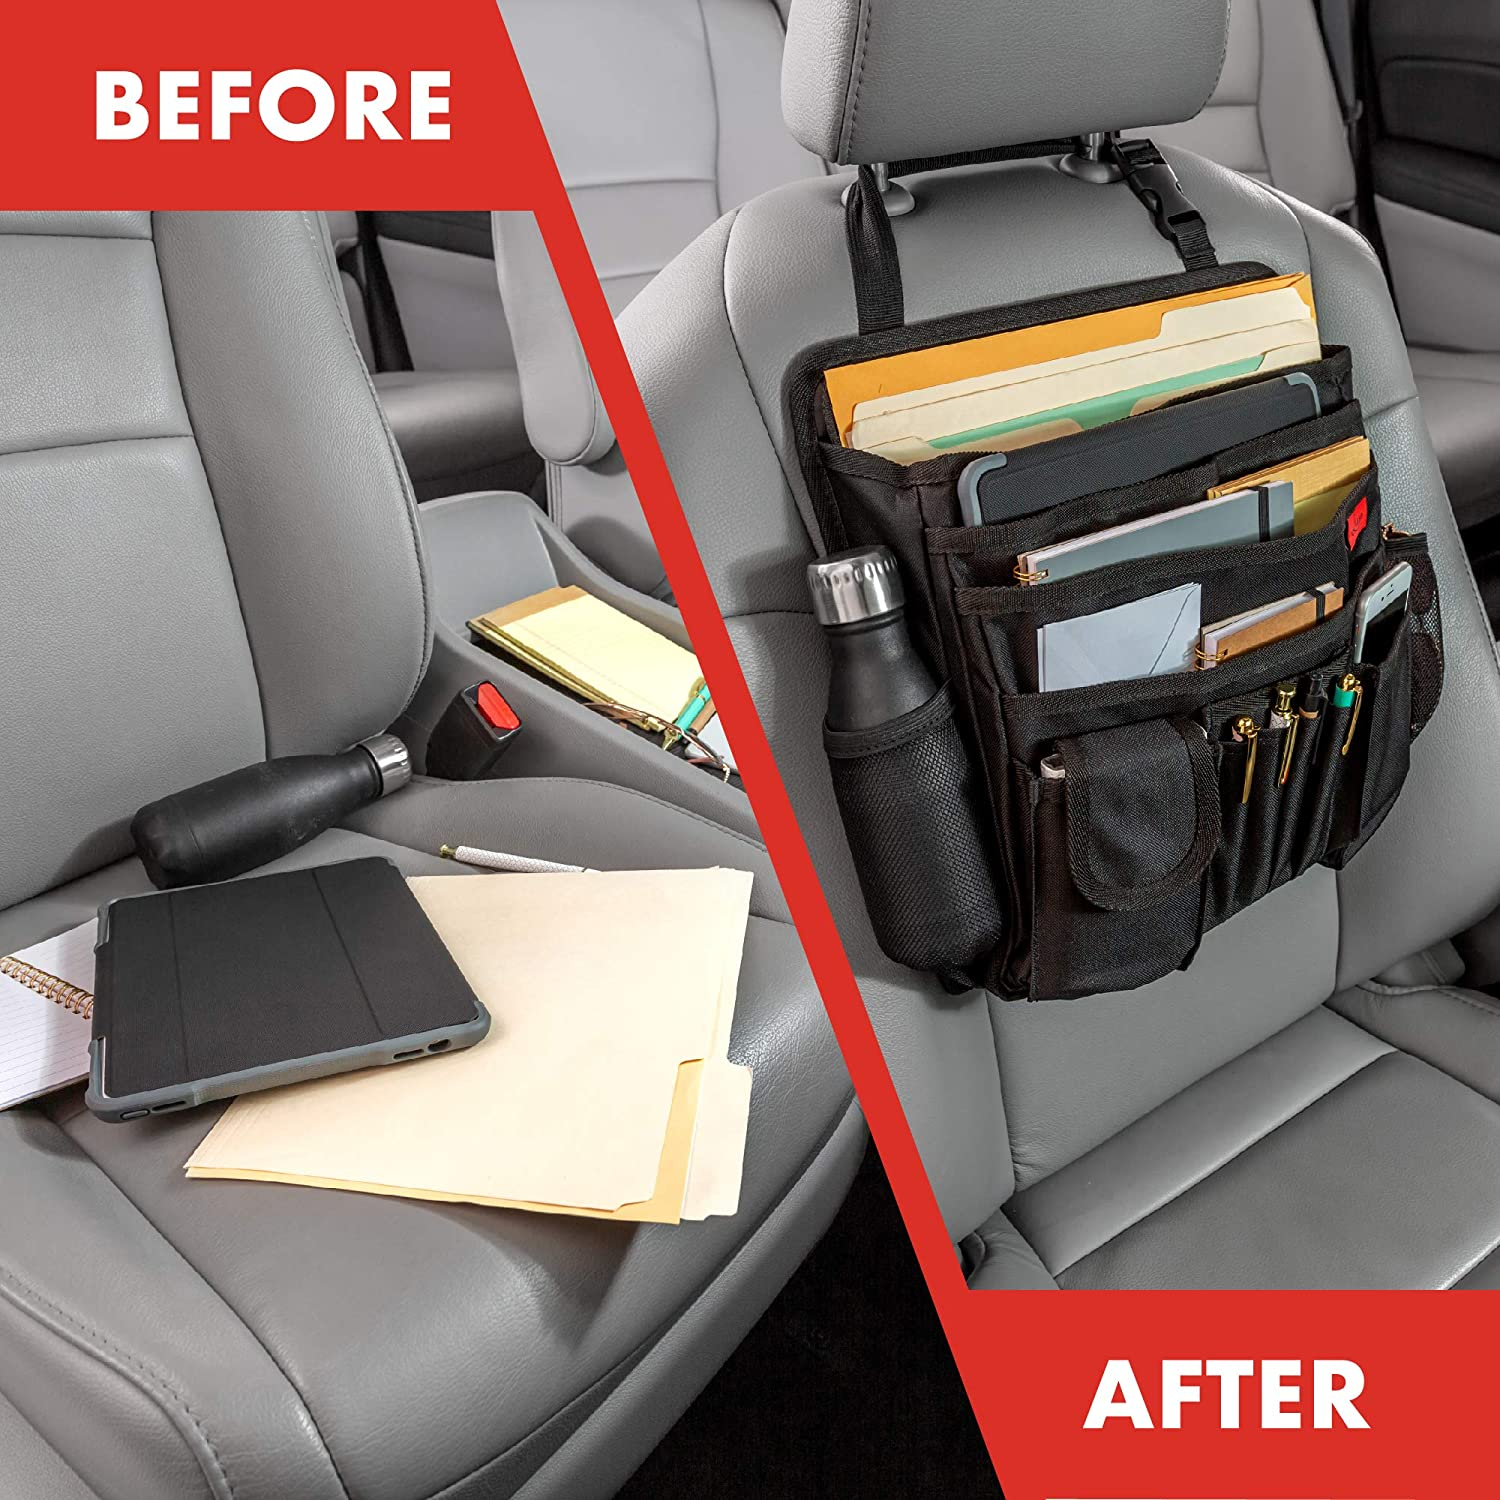 Lusso Gear Car Front Seat Organizer Mobile//Car Office Organizer Also for Law Enforcement//Police//Patrol Bag Fits Any Car//Truck Strong /& Durable Storage for Laptop//iPad//Office Supplies /& More